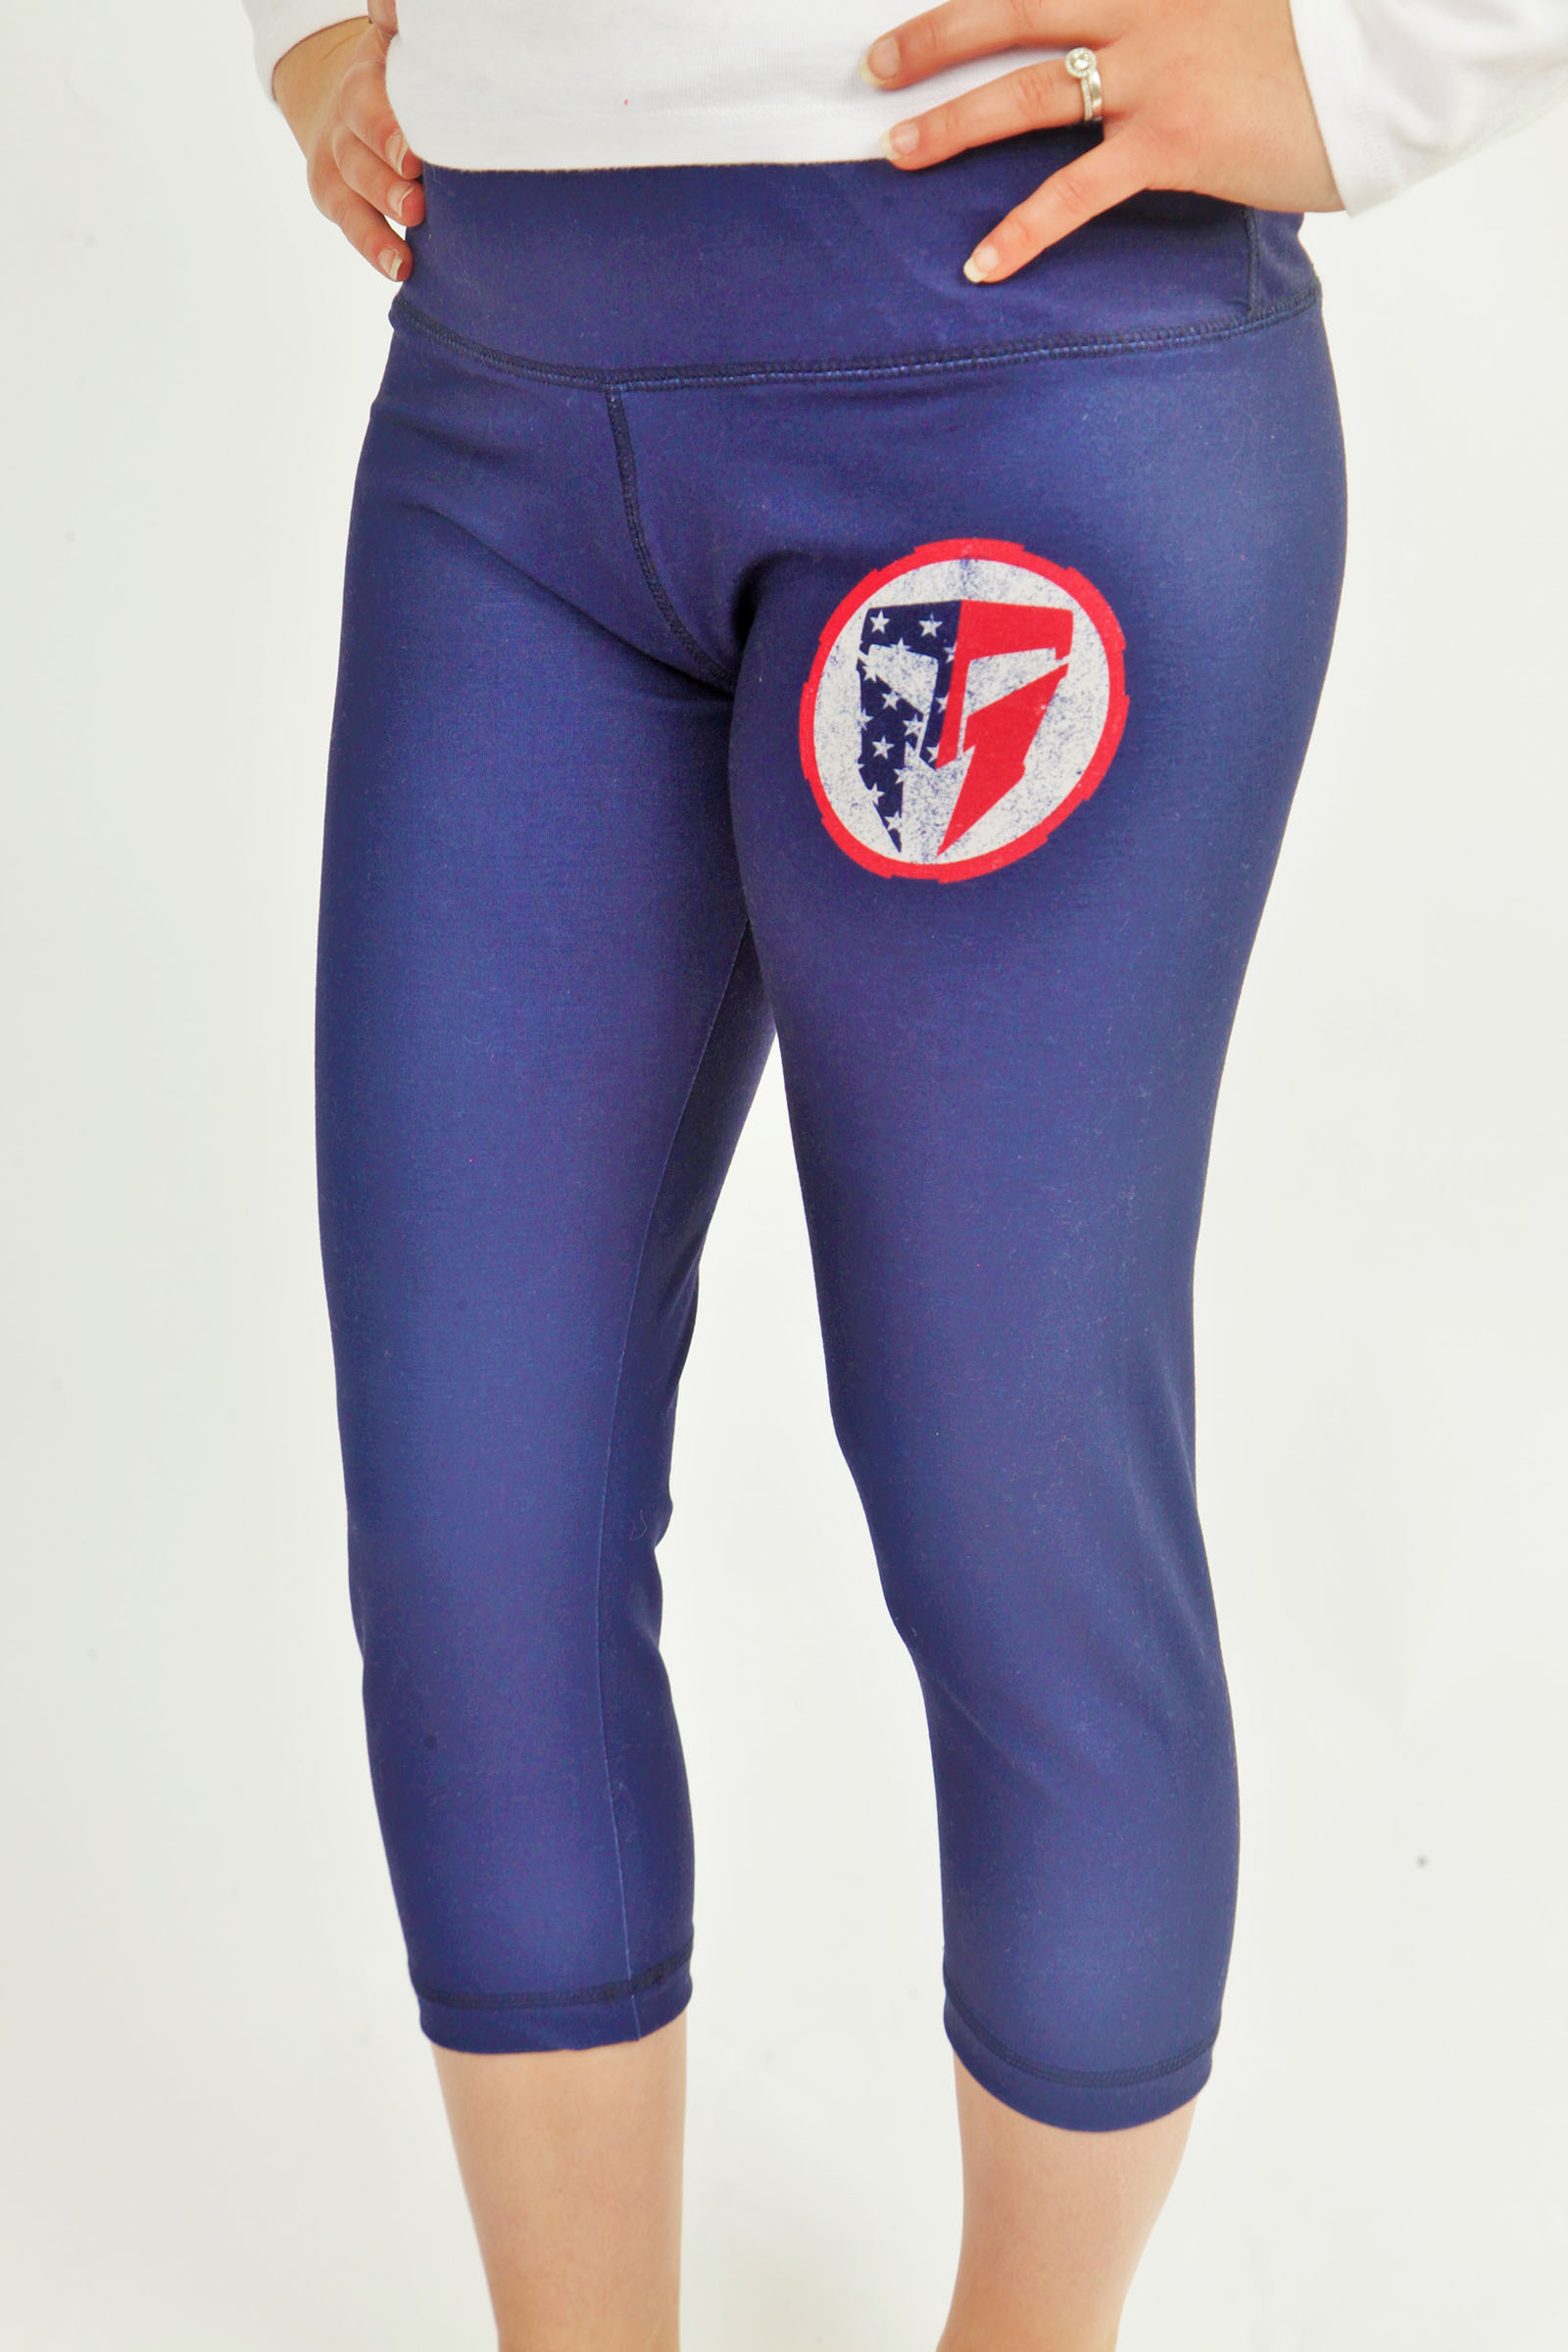 TMF Ladies Navy Blue Capri